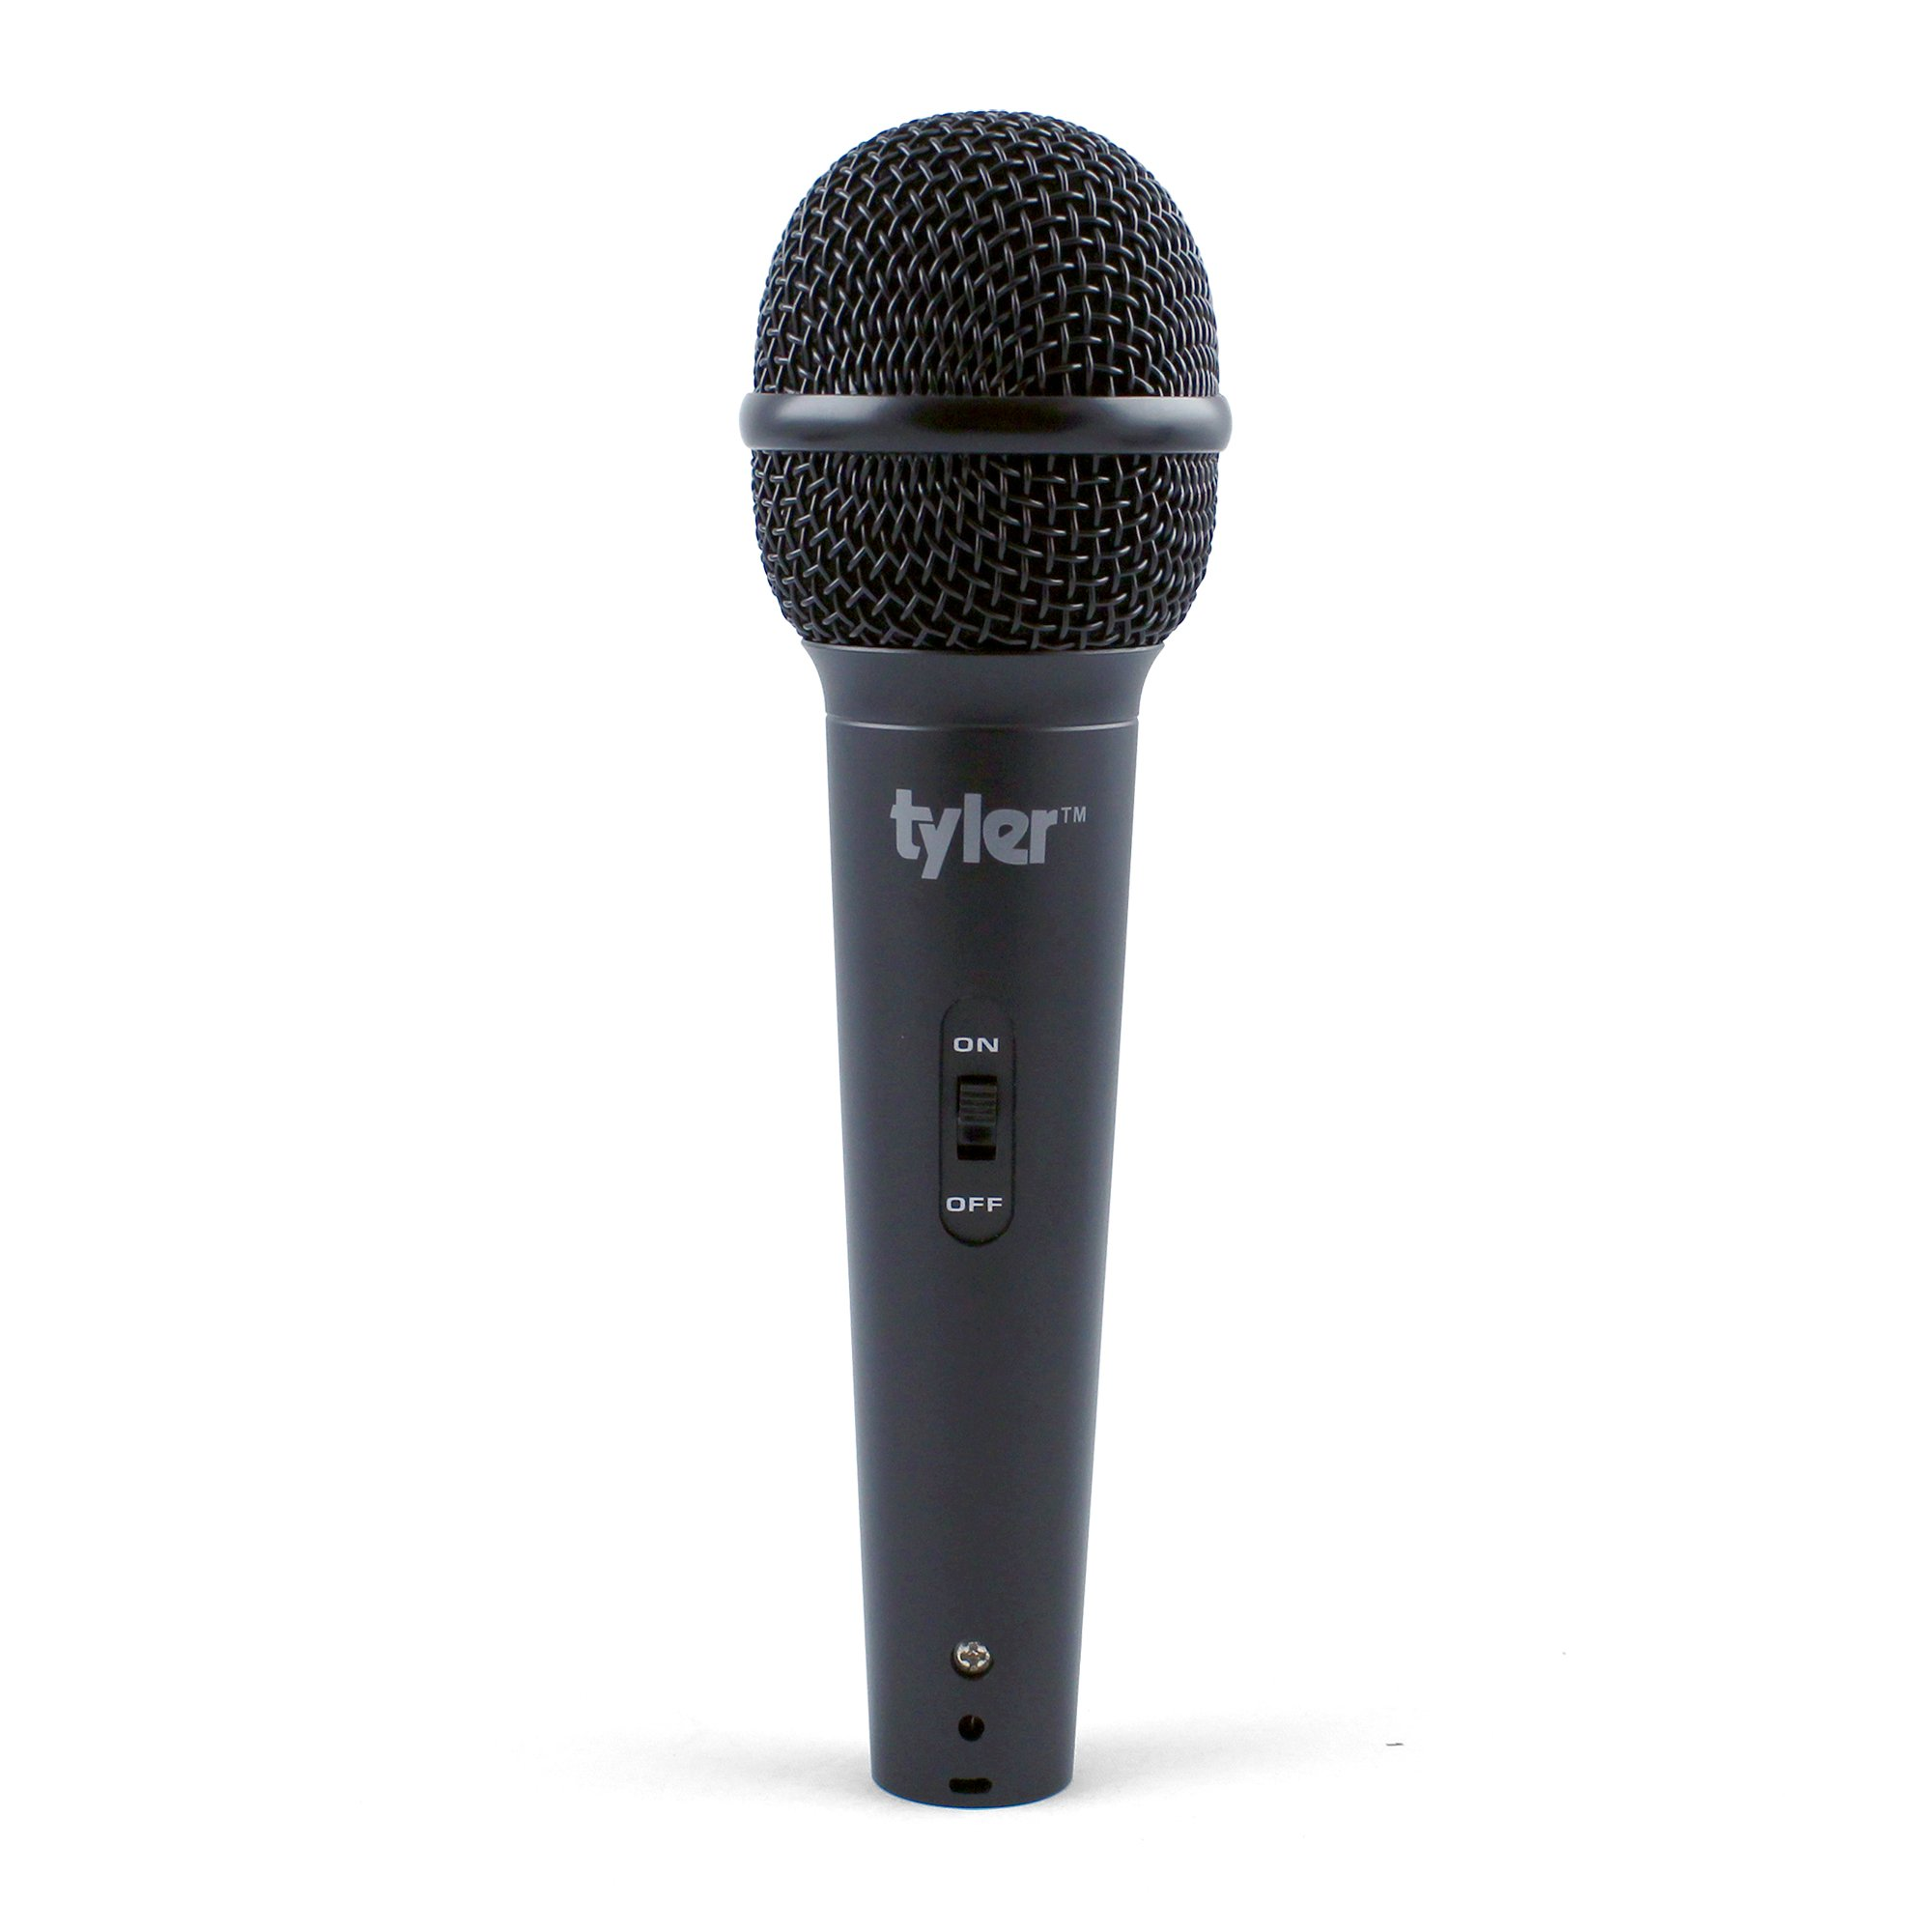 Tyler TMS304-BK Professional Moving Coil Dynamic Handheld Microphone - Black by Tyler